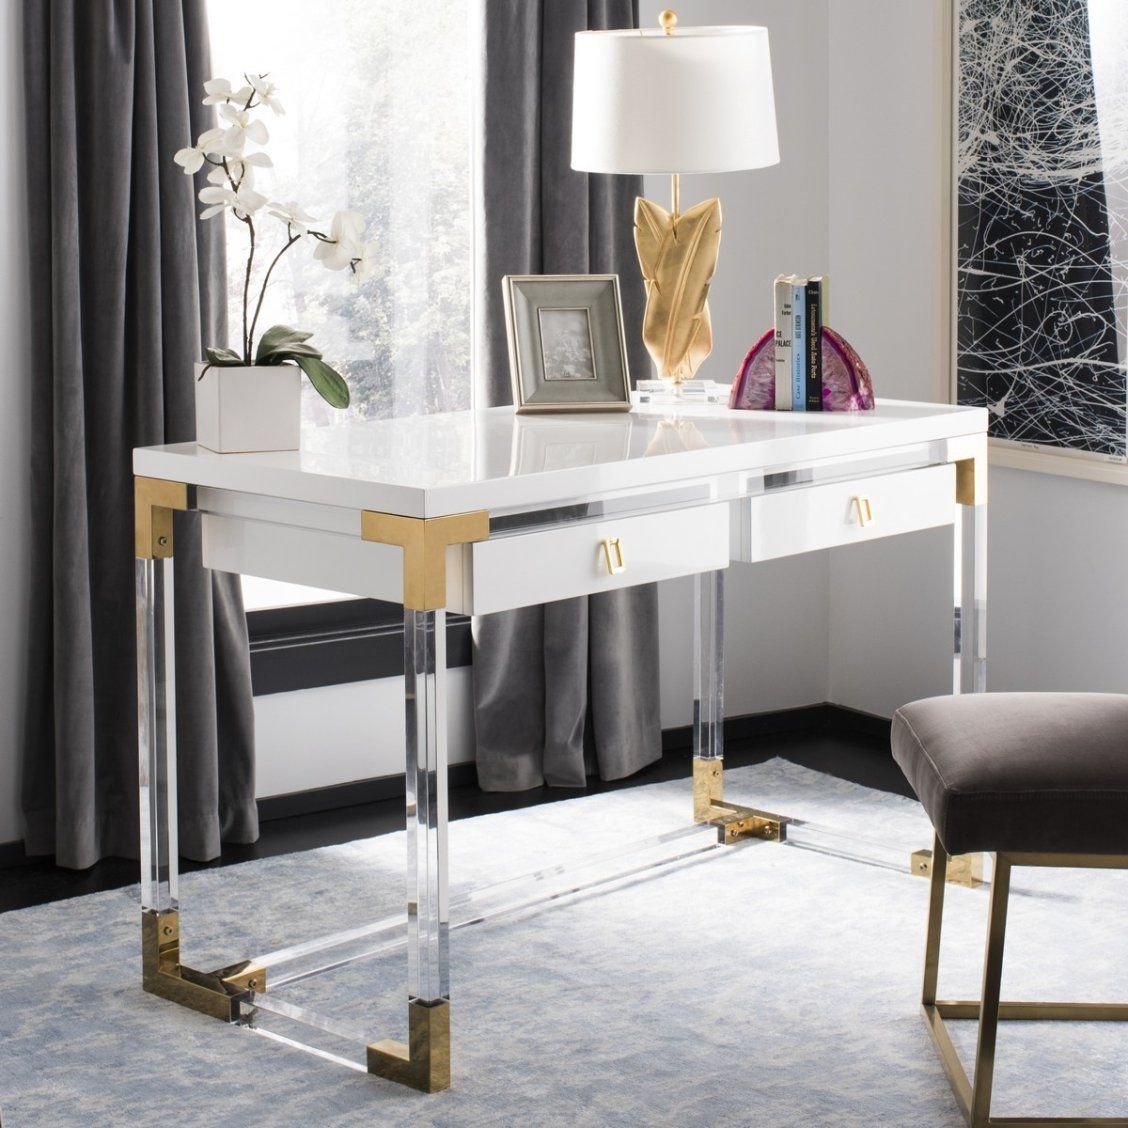 extravagant home office room. ethereal and extravagant, this contemporary acrylic desk adds designer style to any home office or living room. crafted with a combination of clear acrylic, extravagant room e